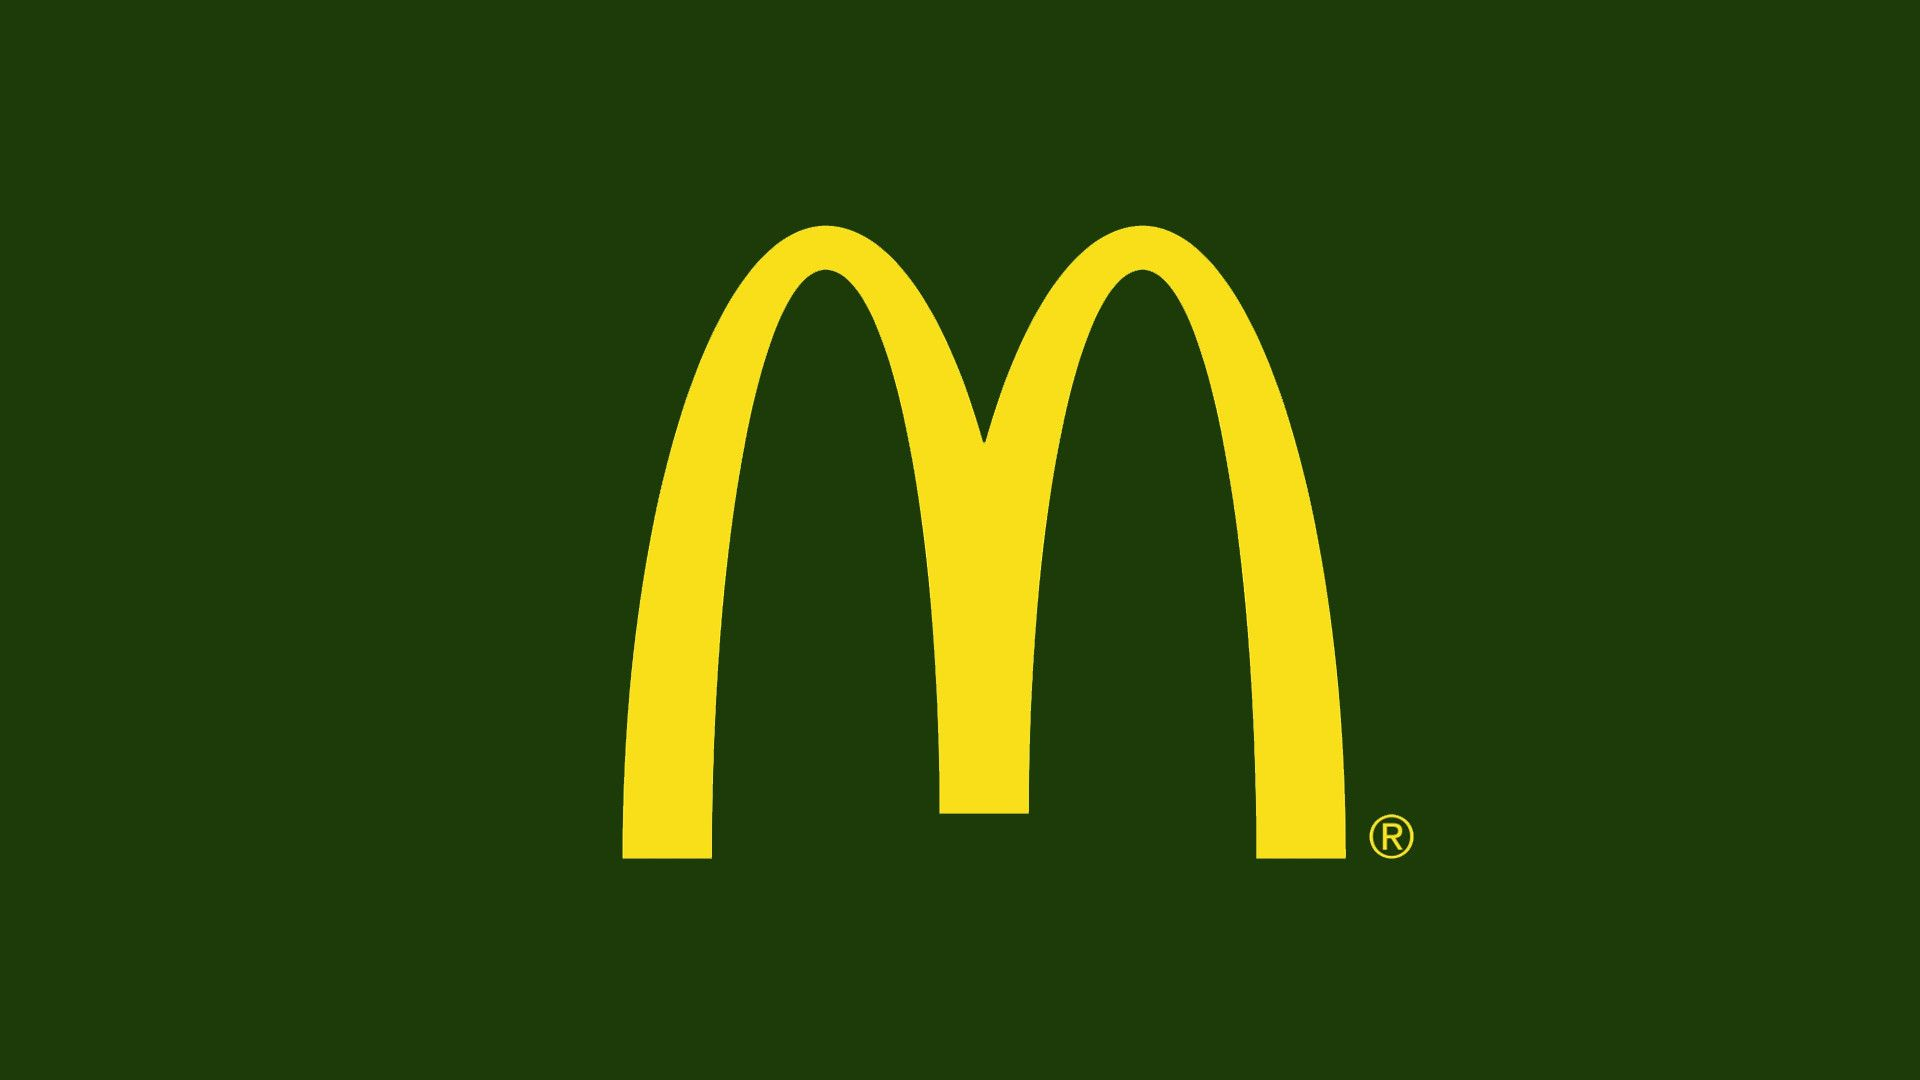 Mcdonald S Menu Prices Mcdonald S Prices Uk Mcdonald S Price